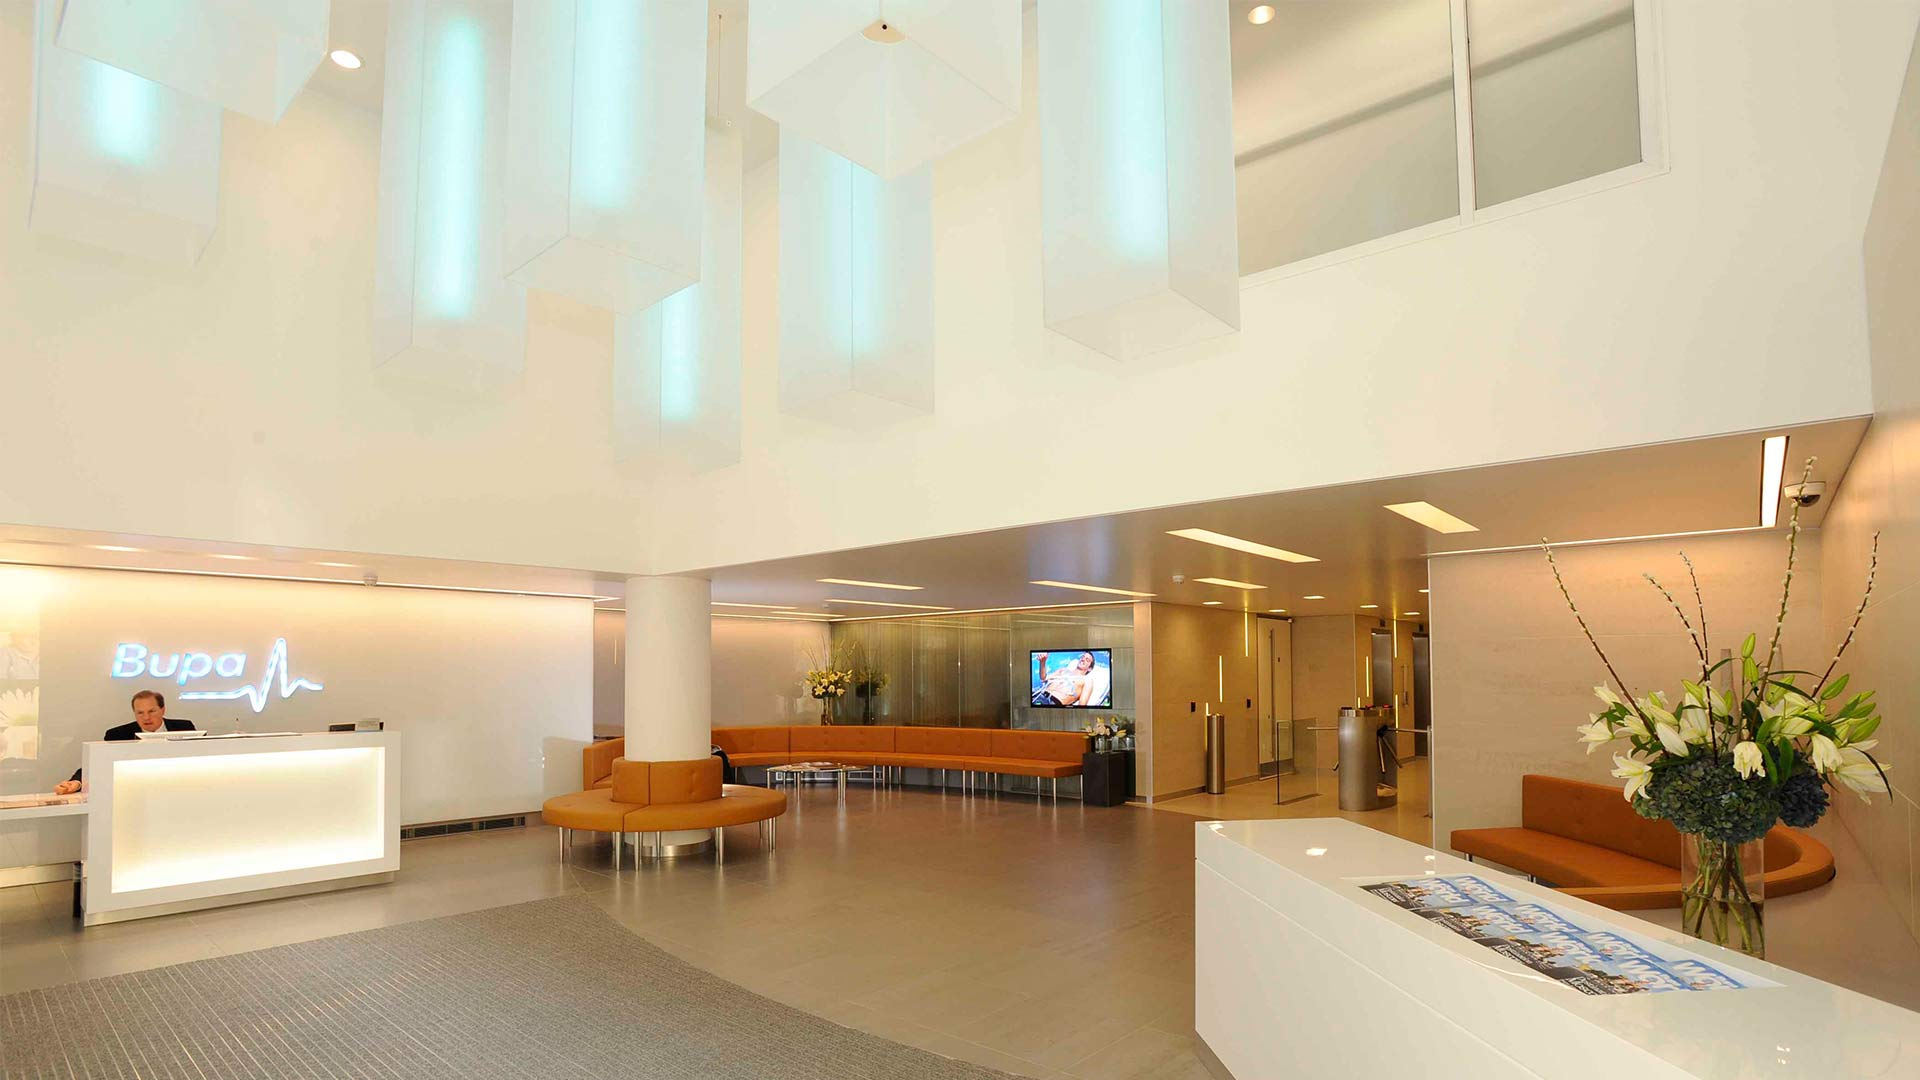 Bupa headquarters nulty lighting design consultants for Interior design lighting uk